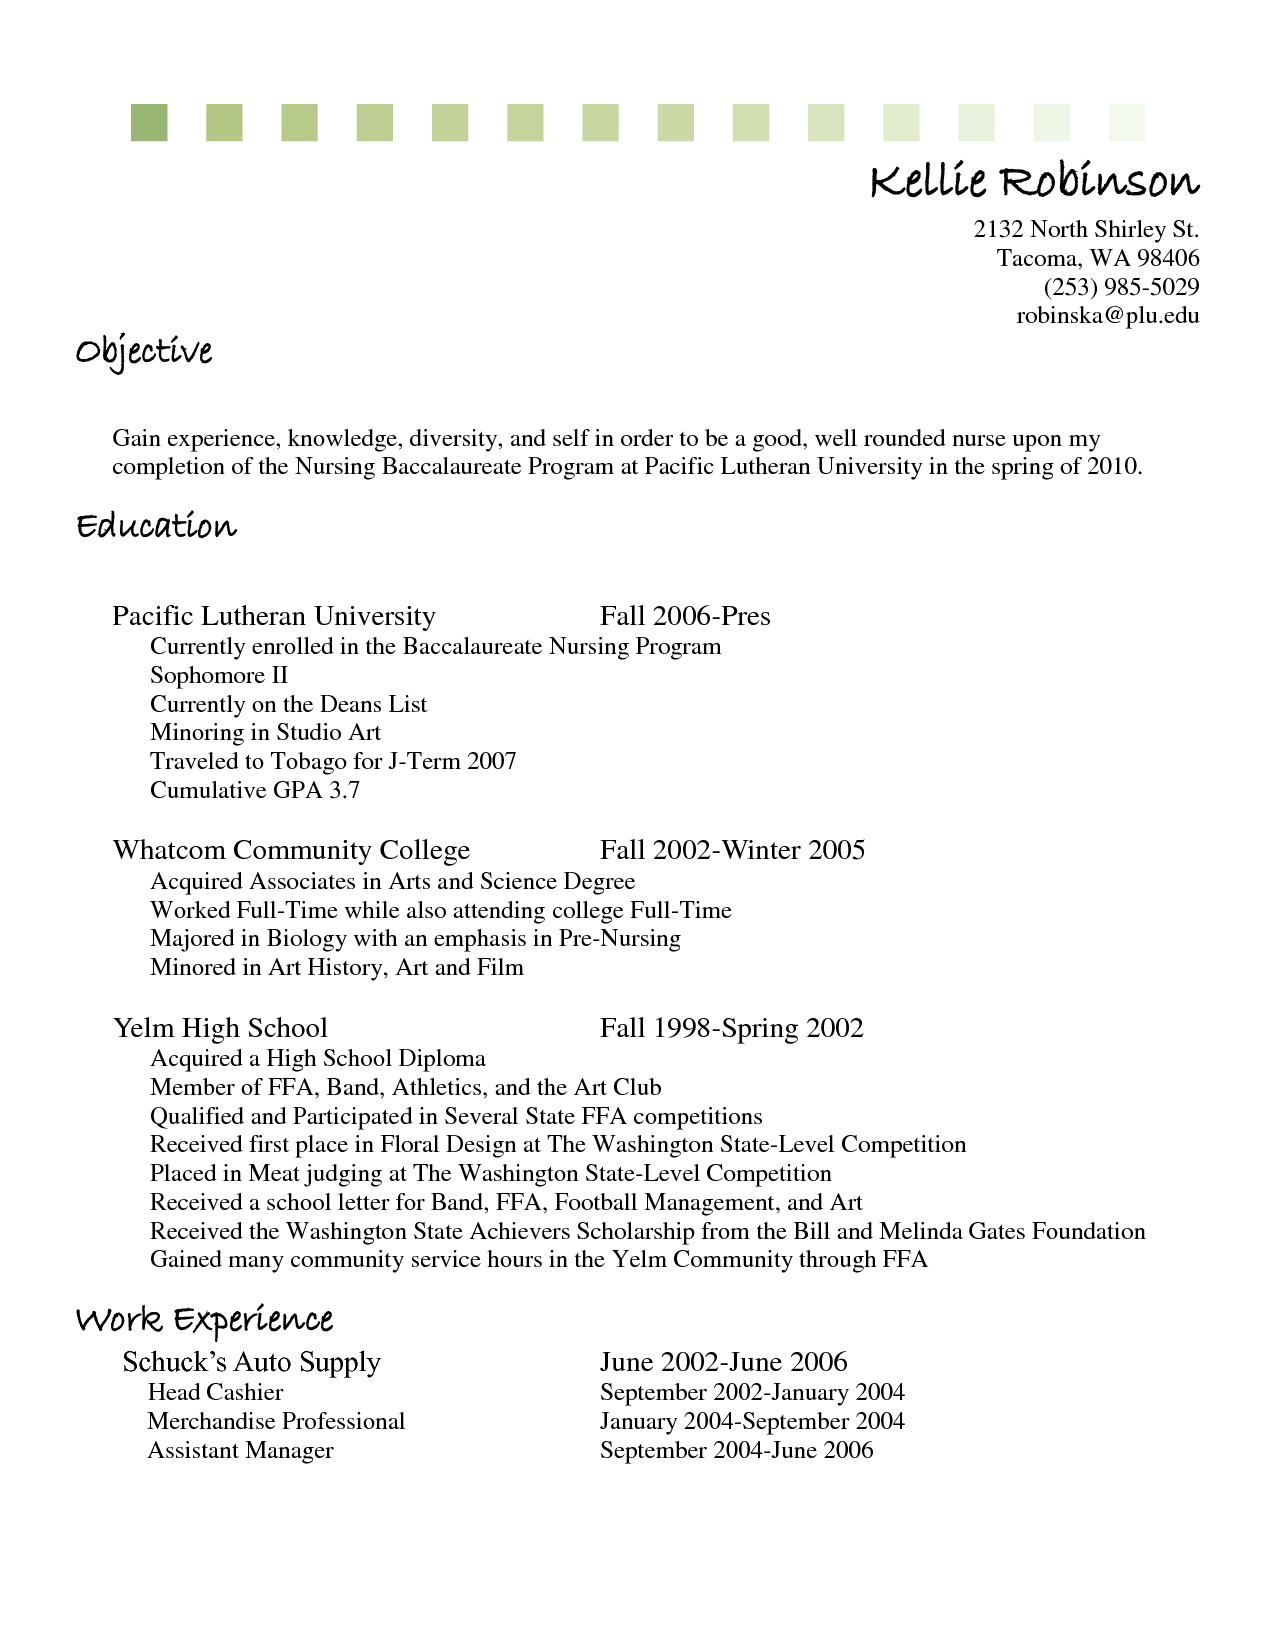 Example Resume Cashier Job Sample Cover Retail Jobs Letter  Cashier Sample Resume